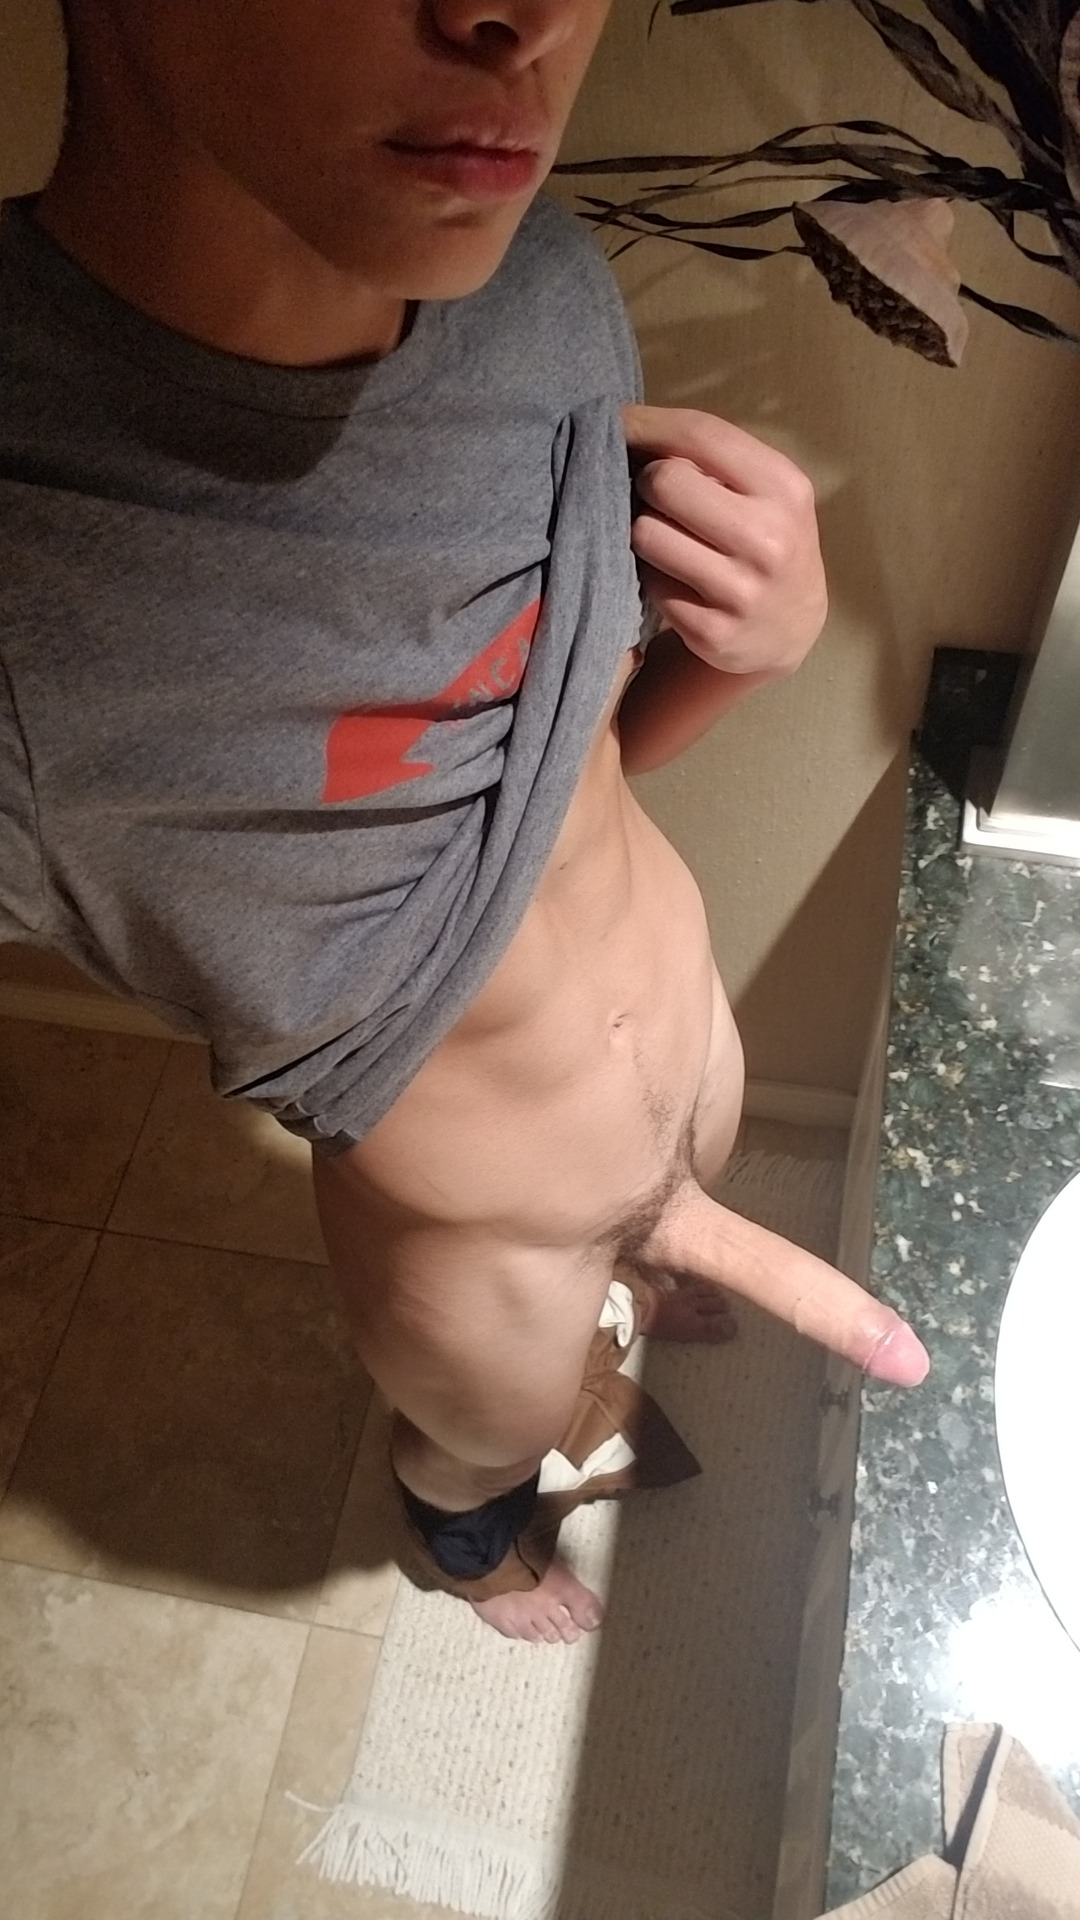 Boy with a big penis